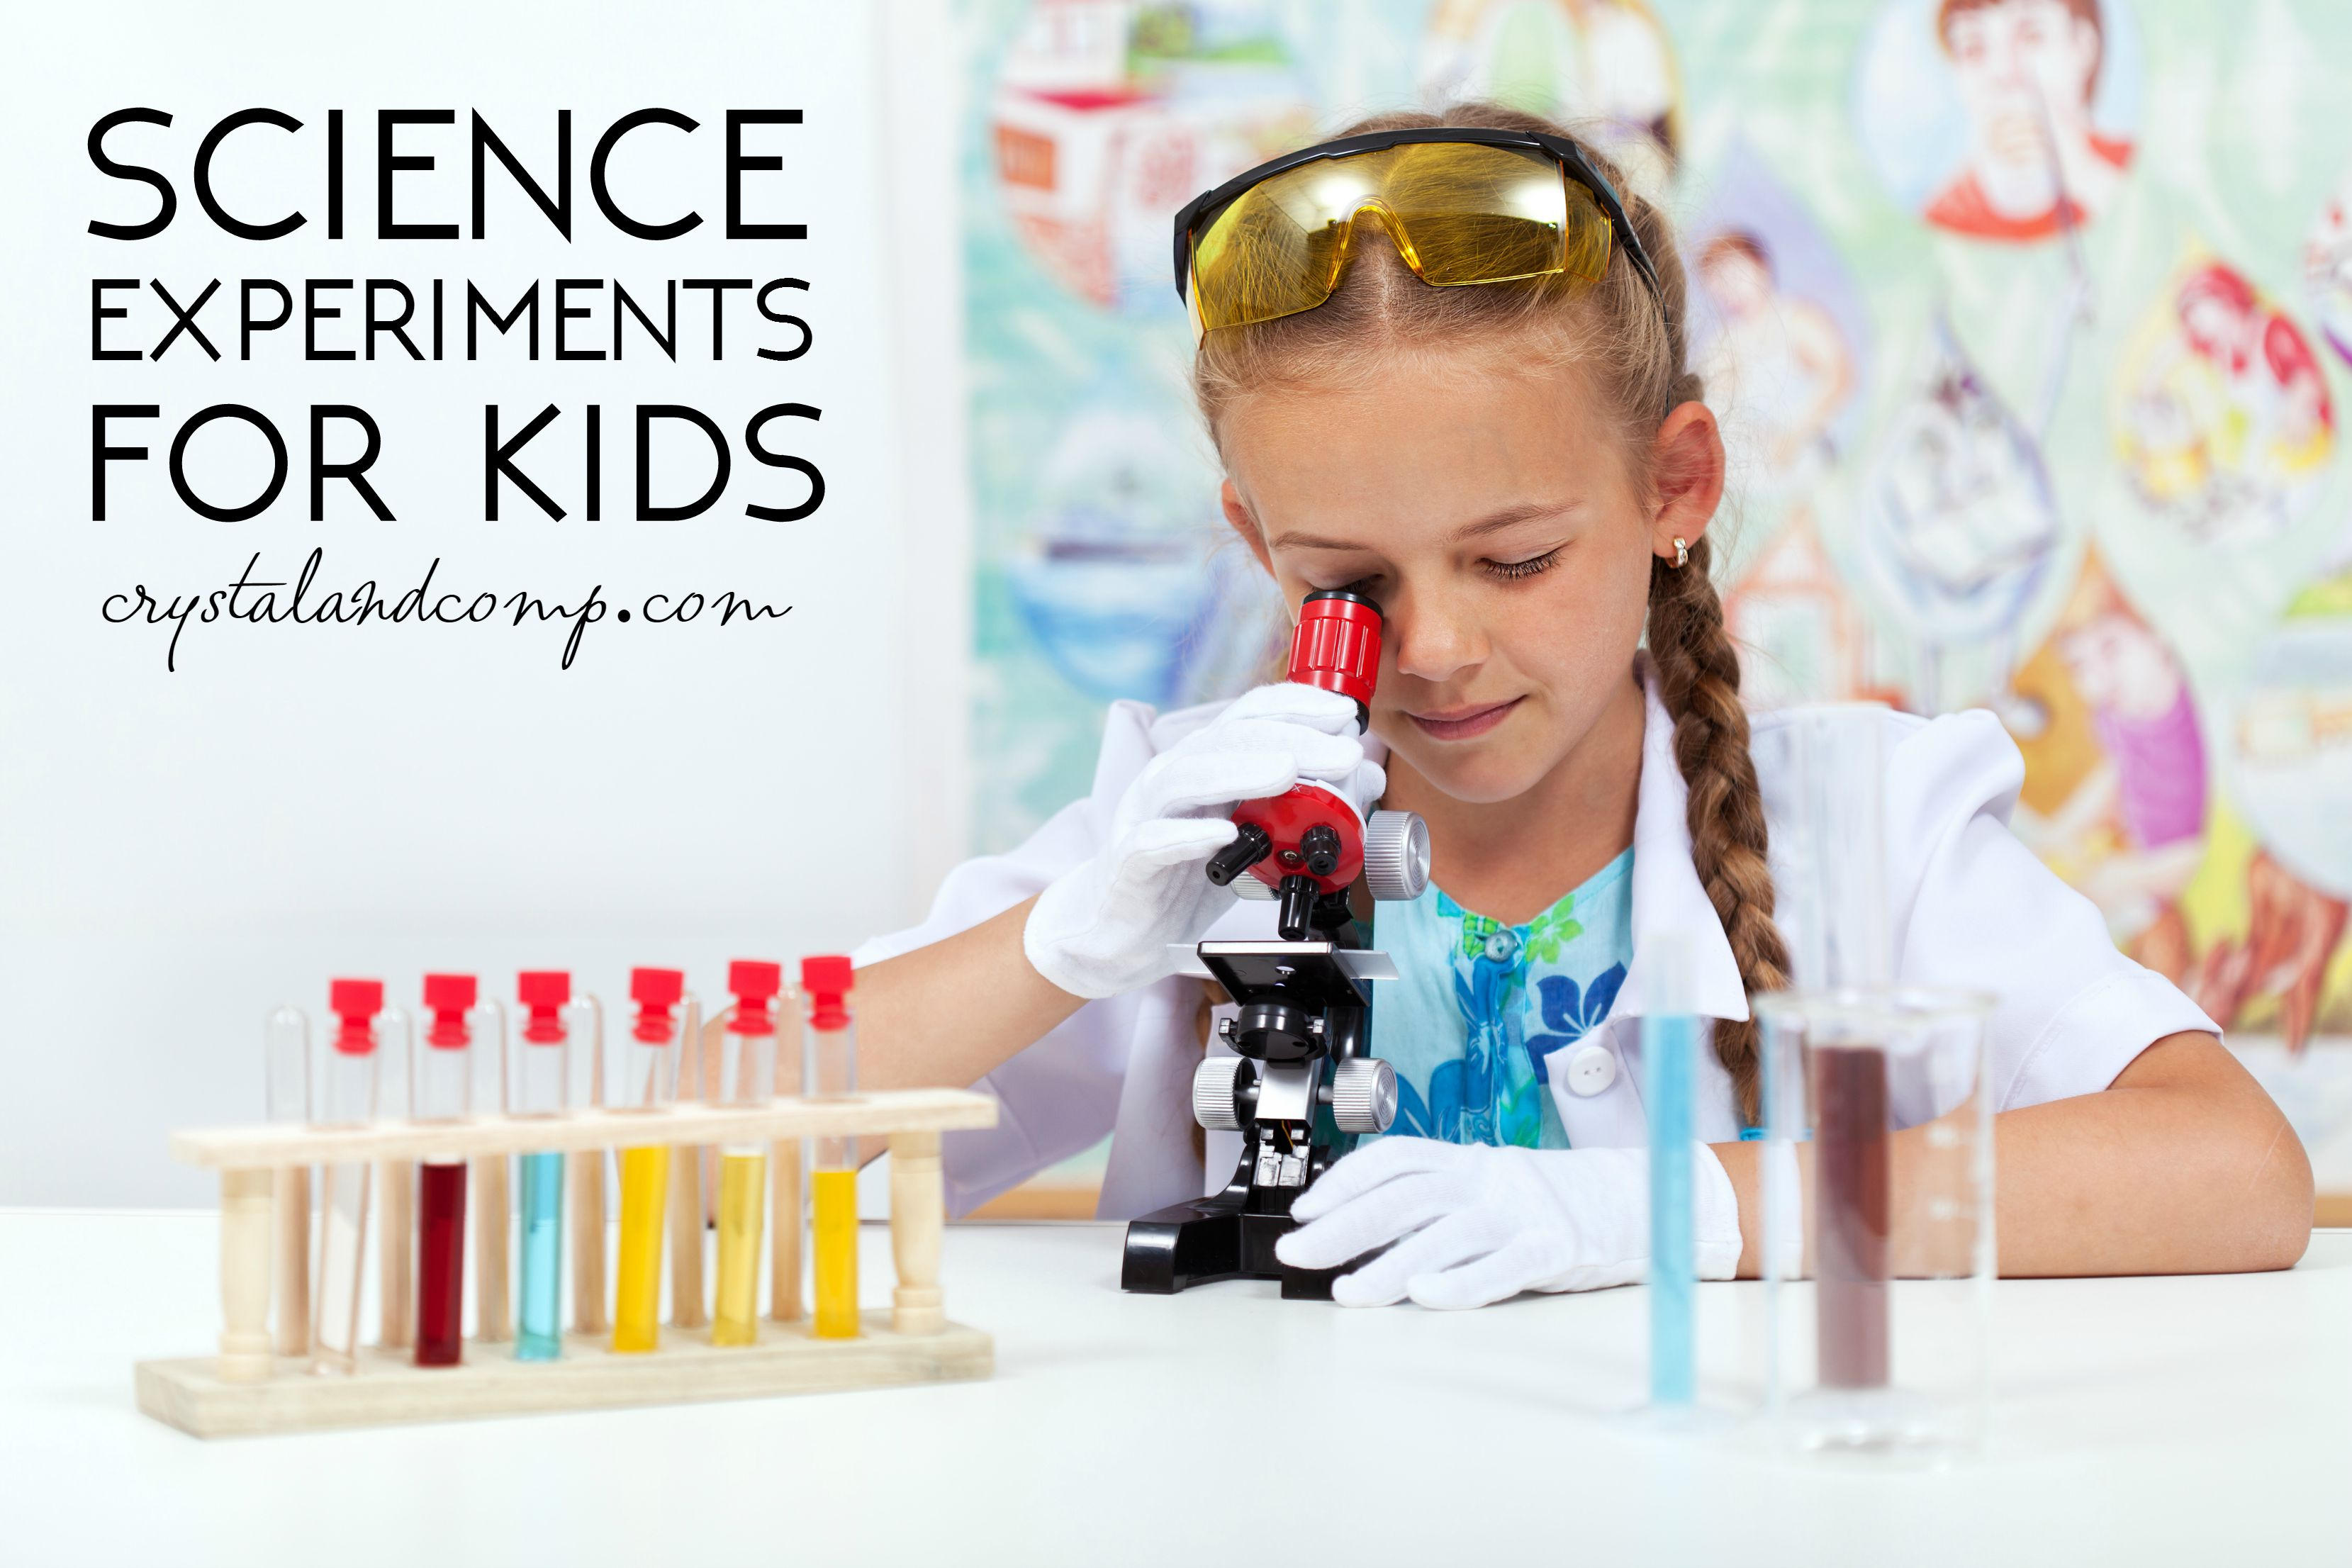 kids school projects Find a wide range of science fair projects for kids as well as ideas that middle school and high school can enjoy creating cool projects with easy ideas.